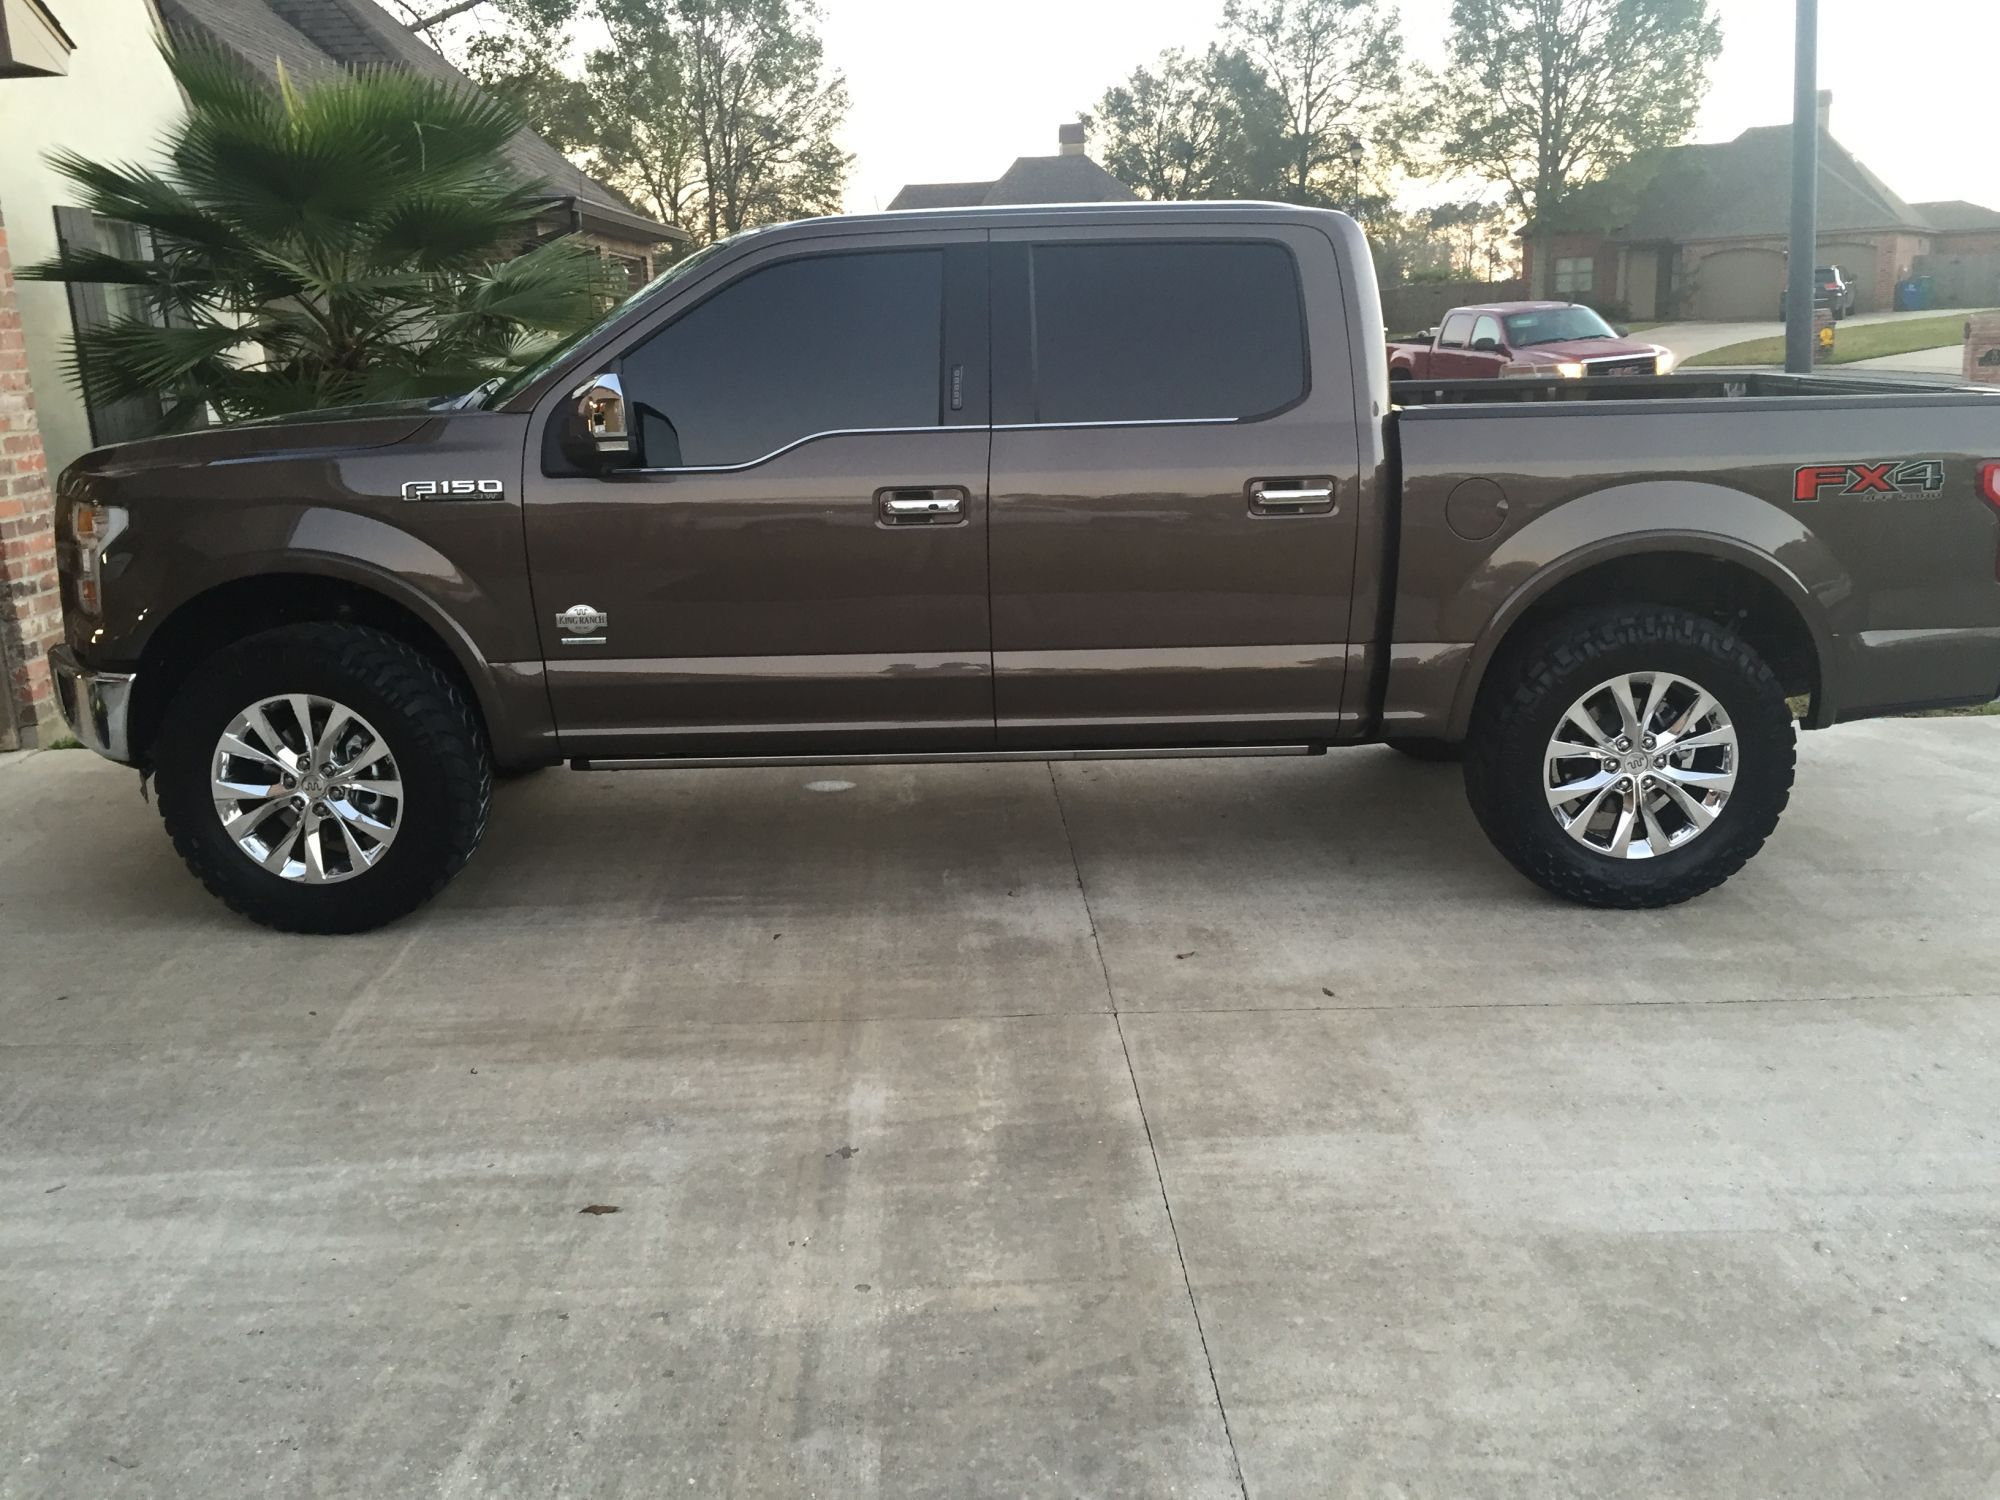 My 2 5 Leveled W X2f 35s King Ranch Page 5 Ford F150 Forum